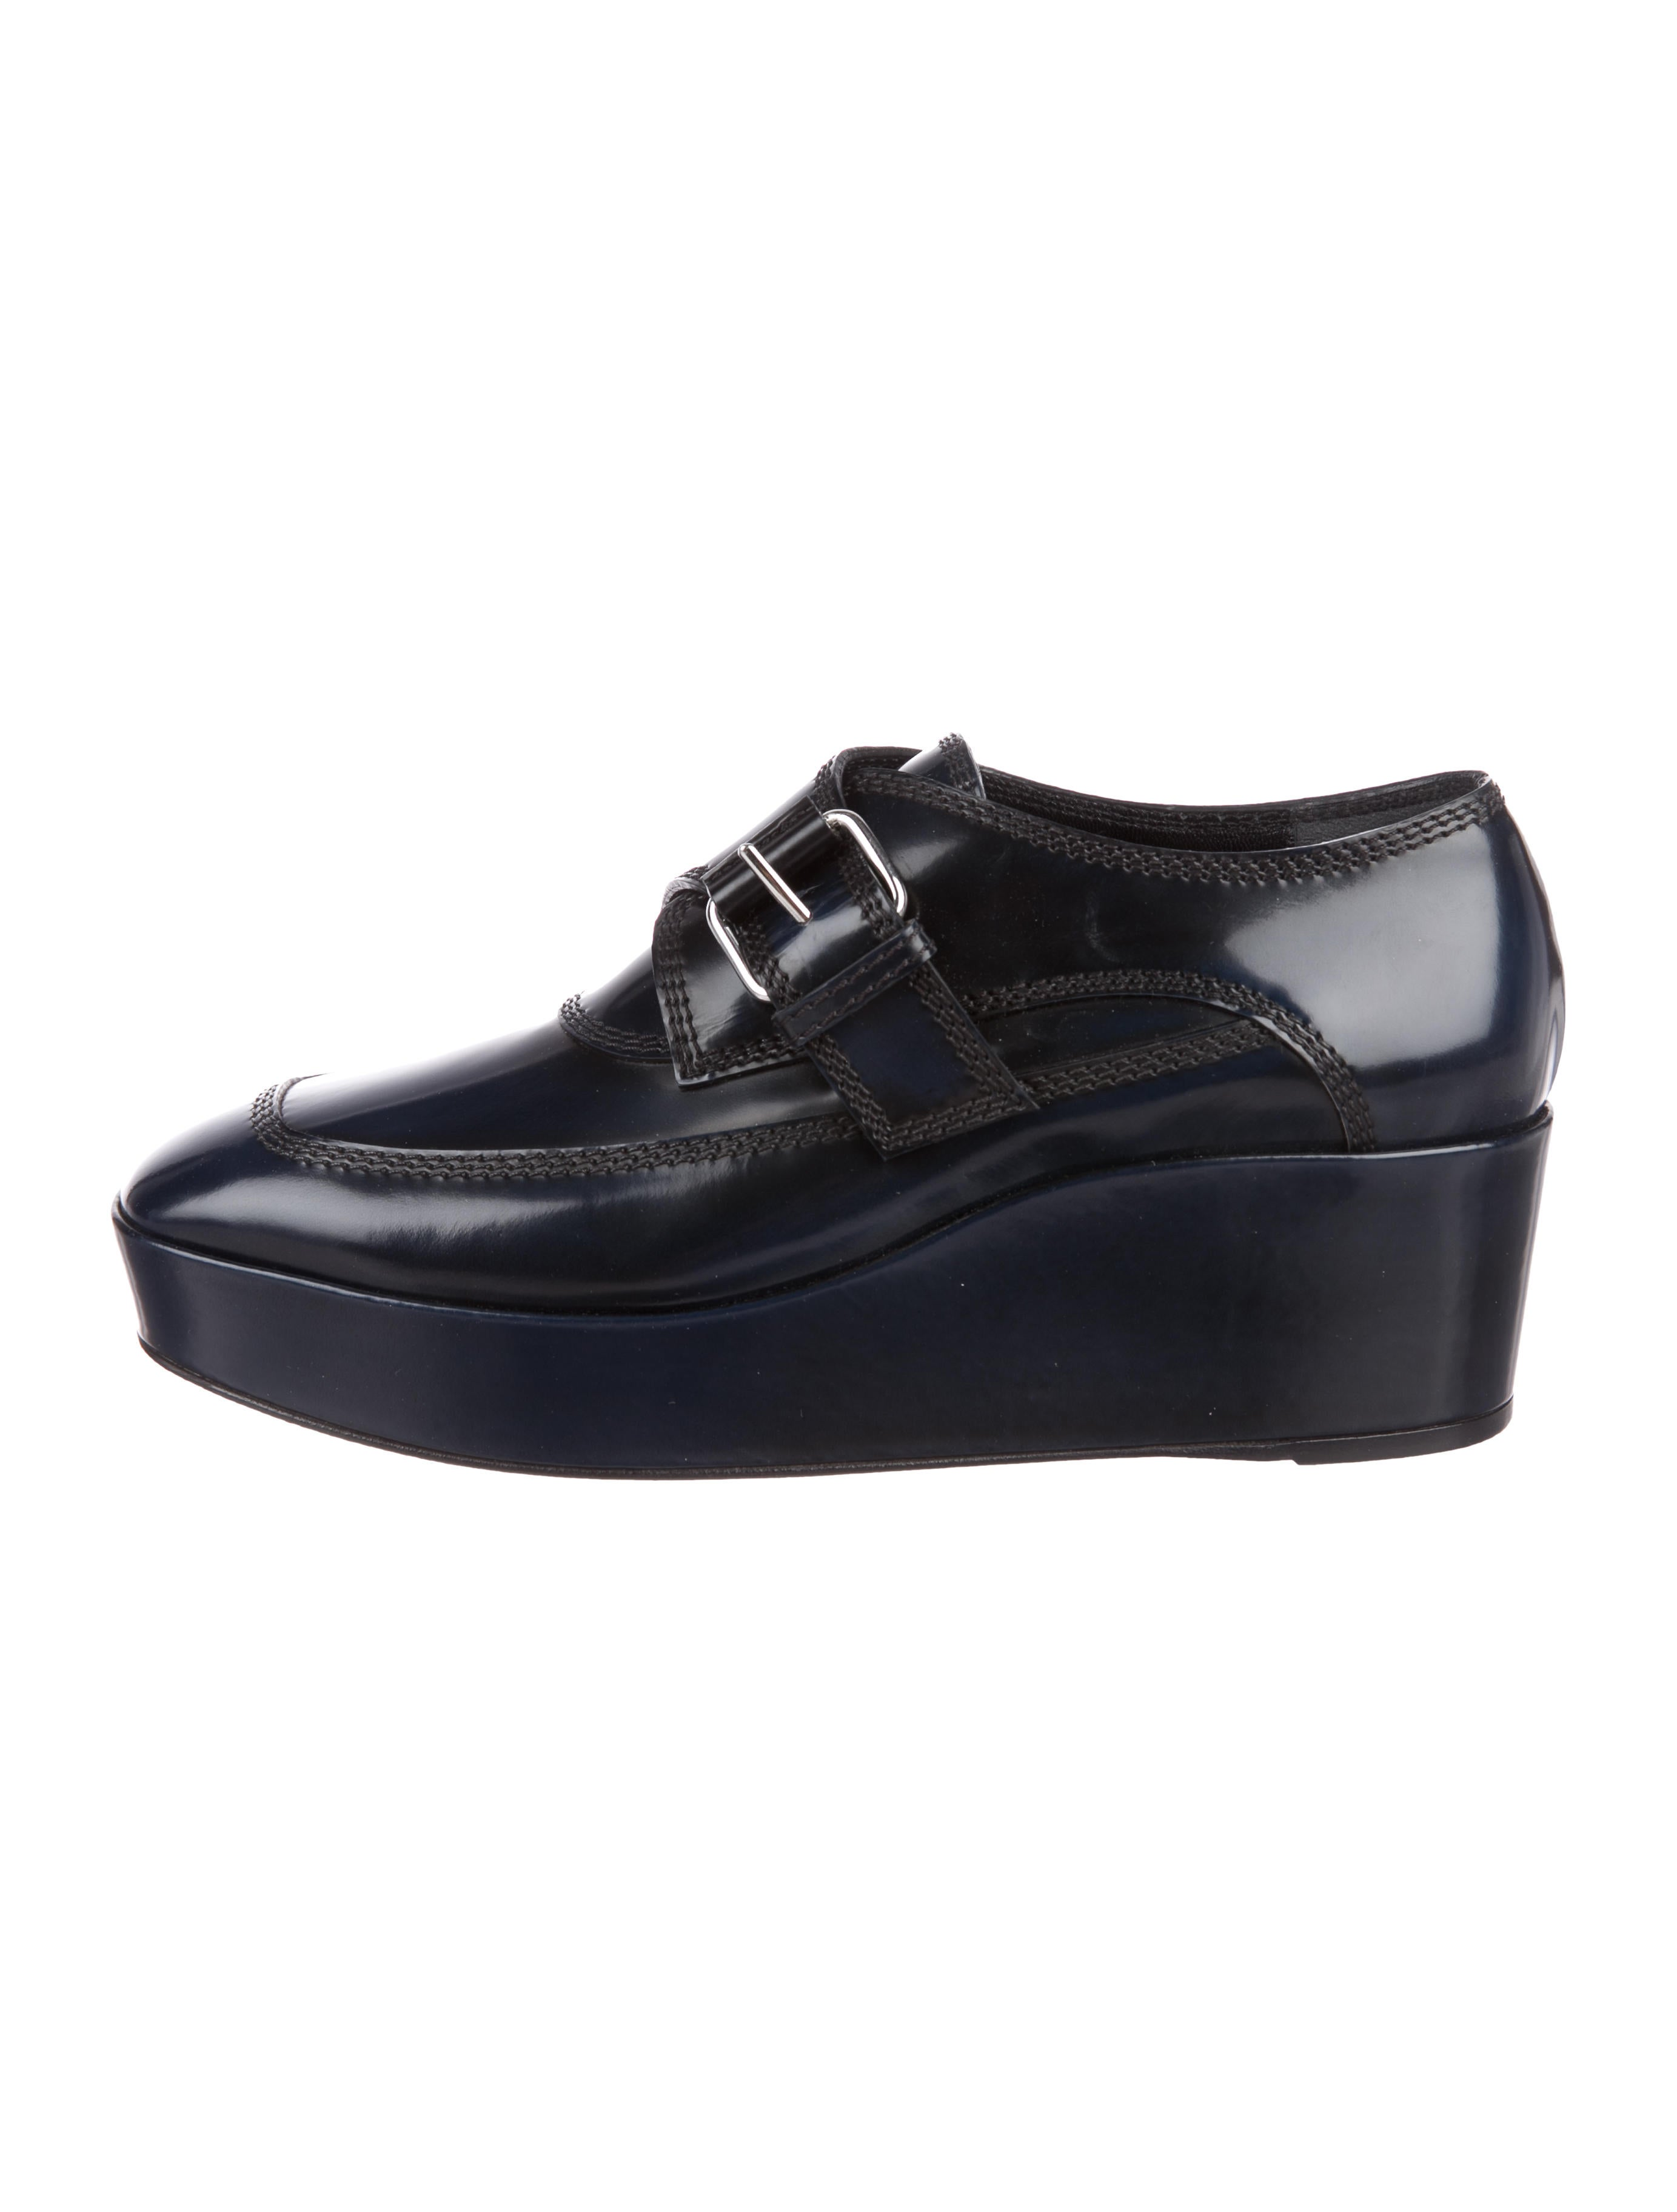 low price for sale discount top quality Balenciaga Leather Platform Oxfords J8wFQ